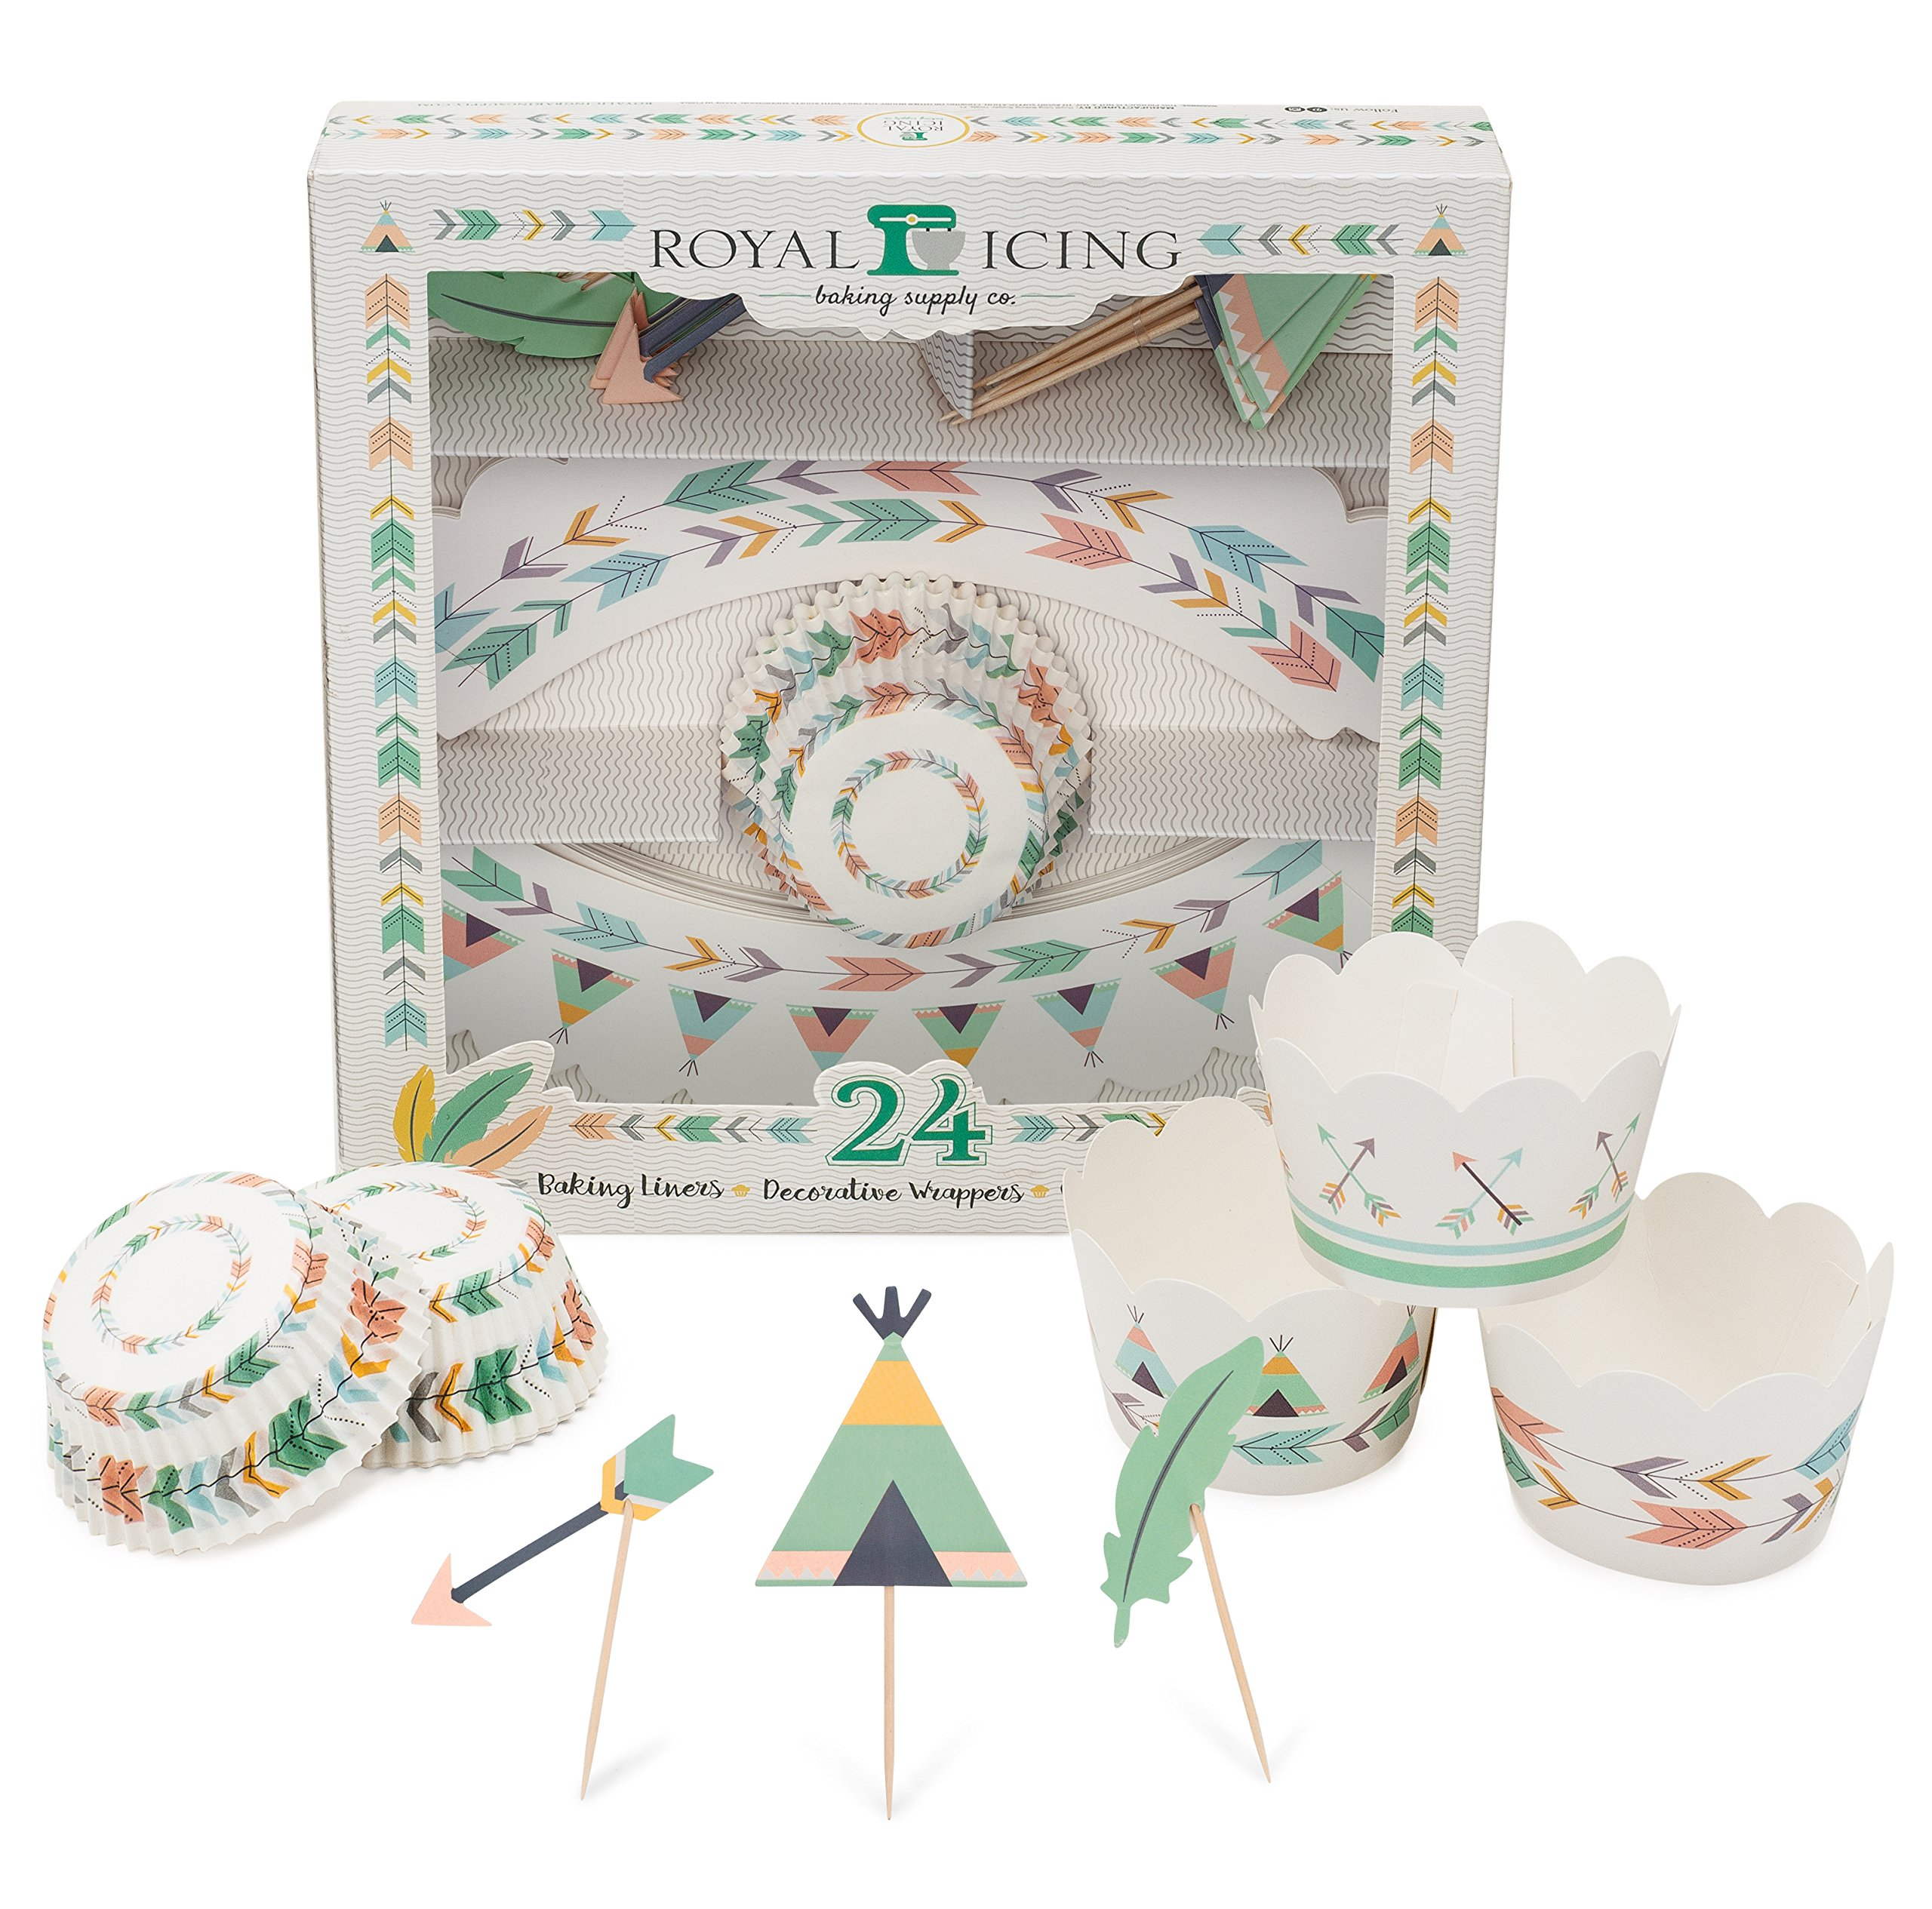 Boho Party Cupcake Decorating Complete Kit Includes Arrow, Teepee, and Feather Toppers, Scale, Tribal, and Bohemian Wrappers, and Extra Bonus! Wild One Baking Liners! by Royal Icing Baking Supply Co.